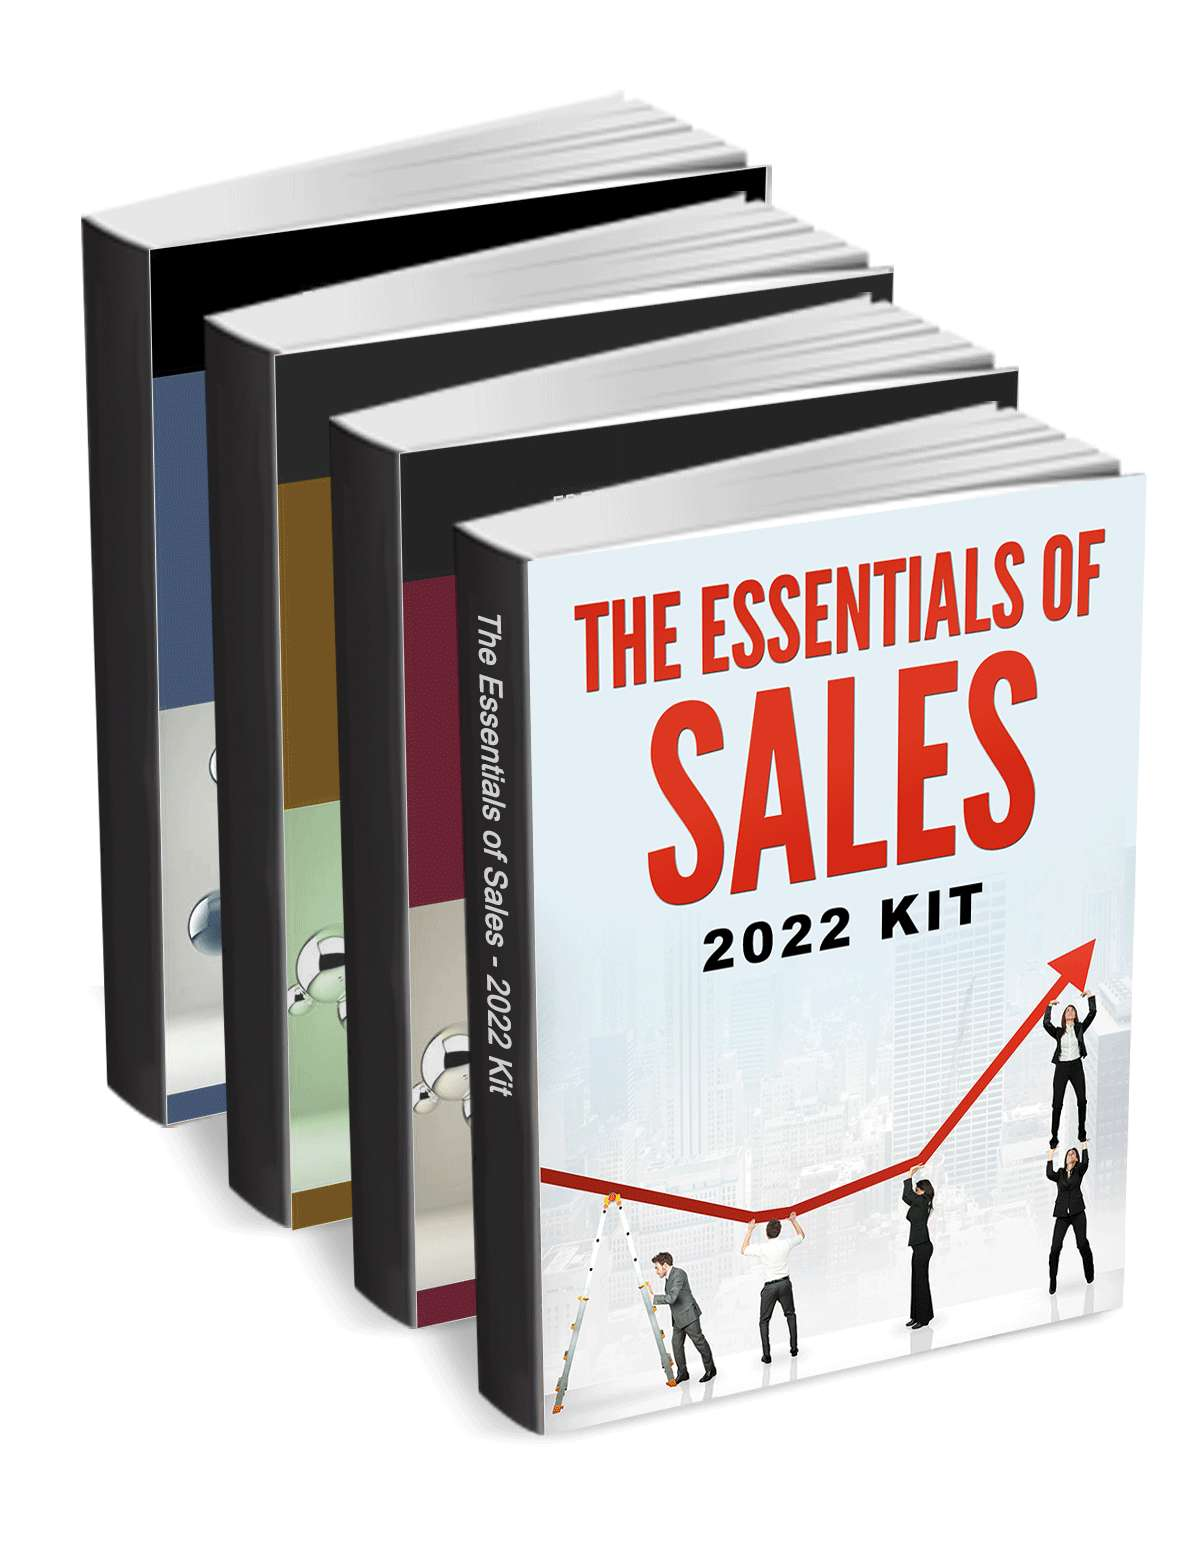 The Essentials of Sales - 2020 Kit